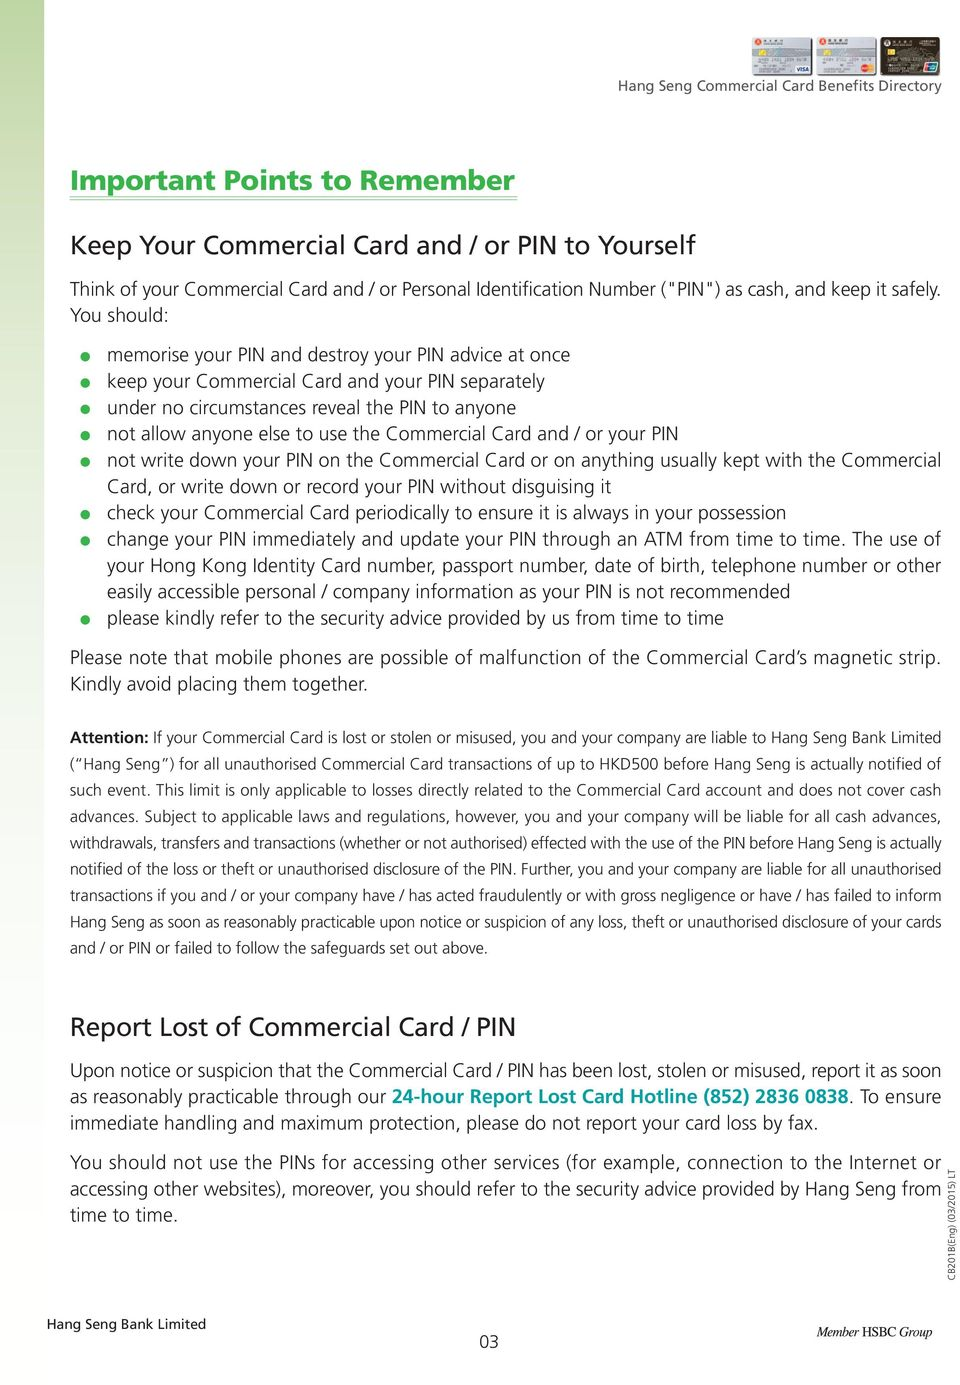 Commercial Card and / or your PIN not write down your PIN on the Commercial Card or on anything usually kept with the Commercial Card, or write down or record your PIN without disguising it check